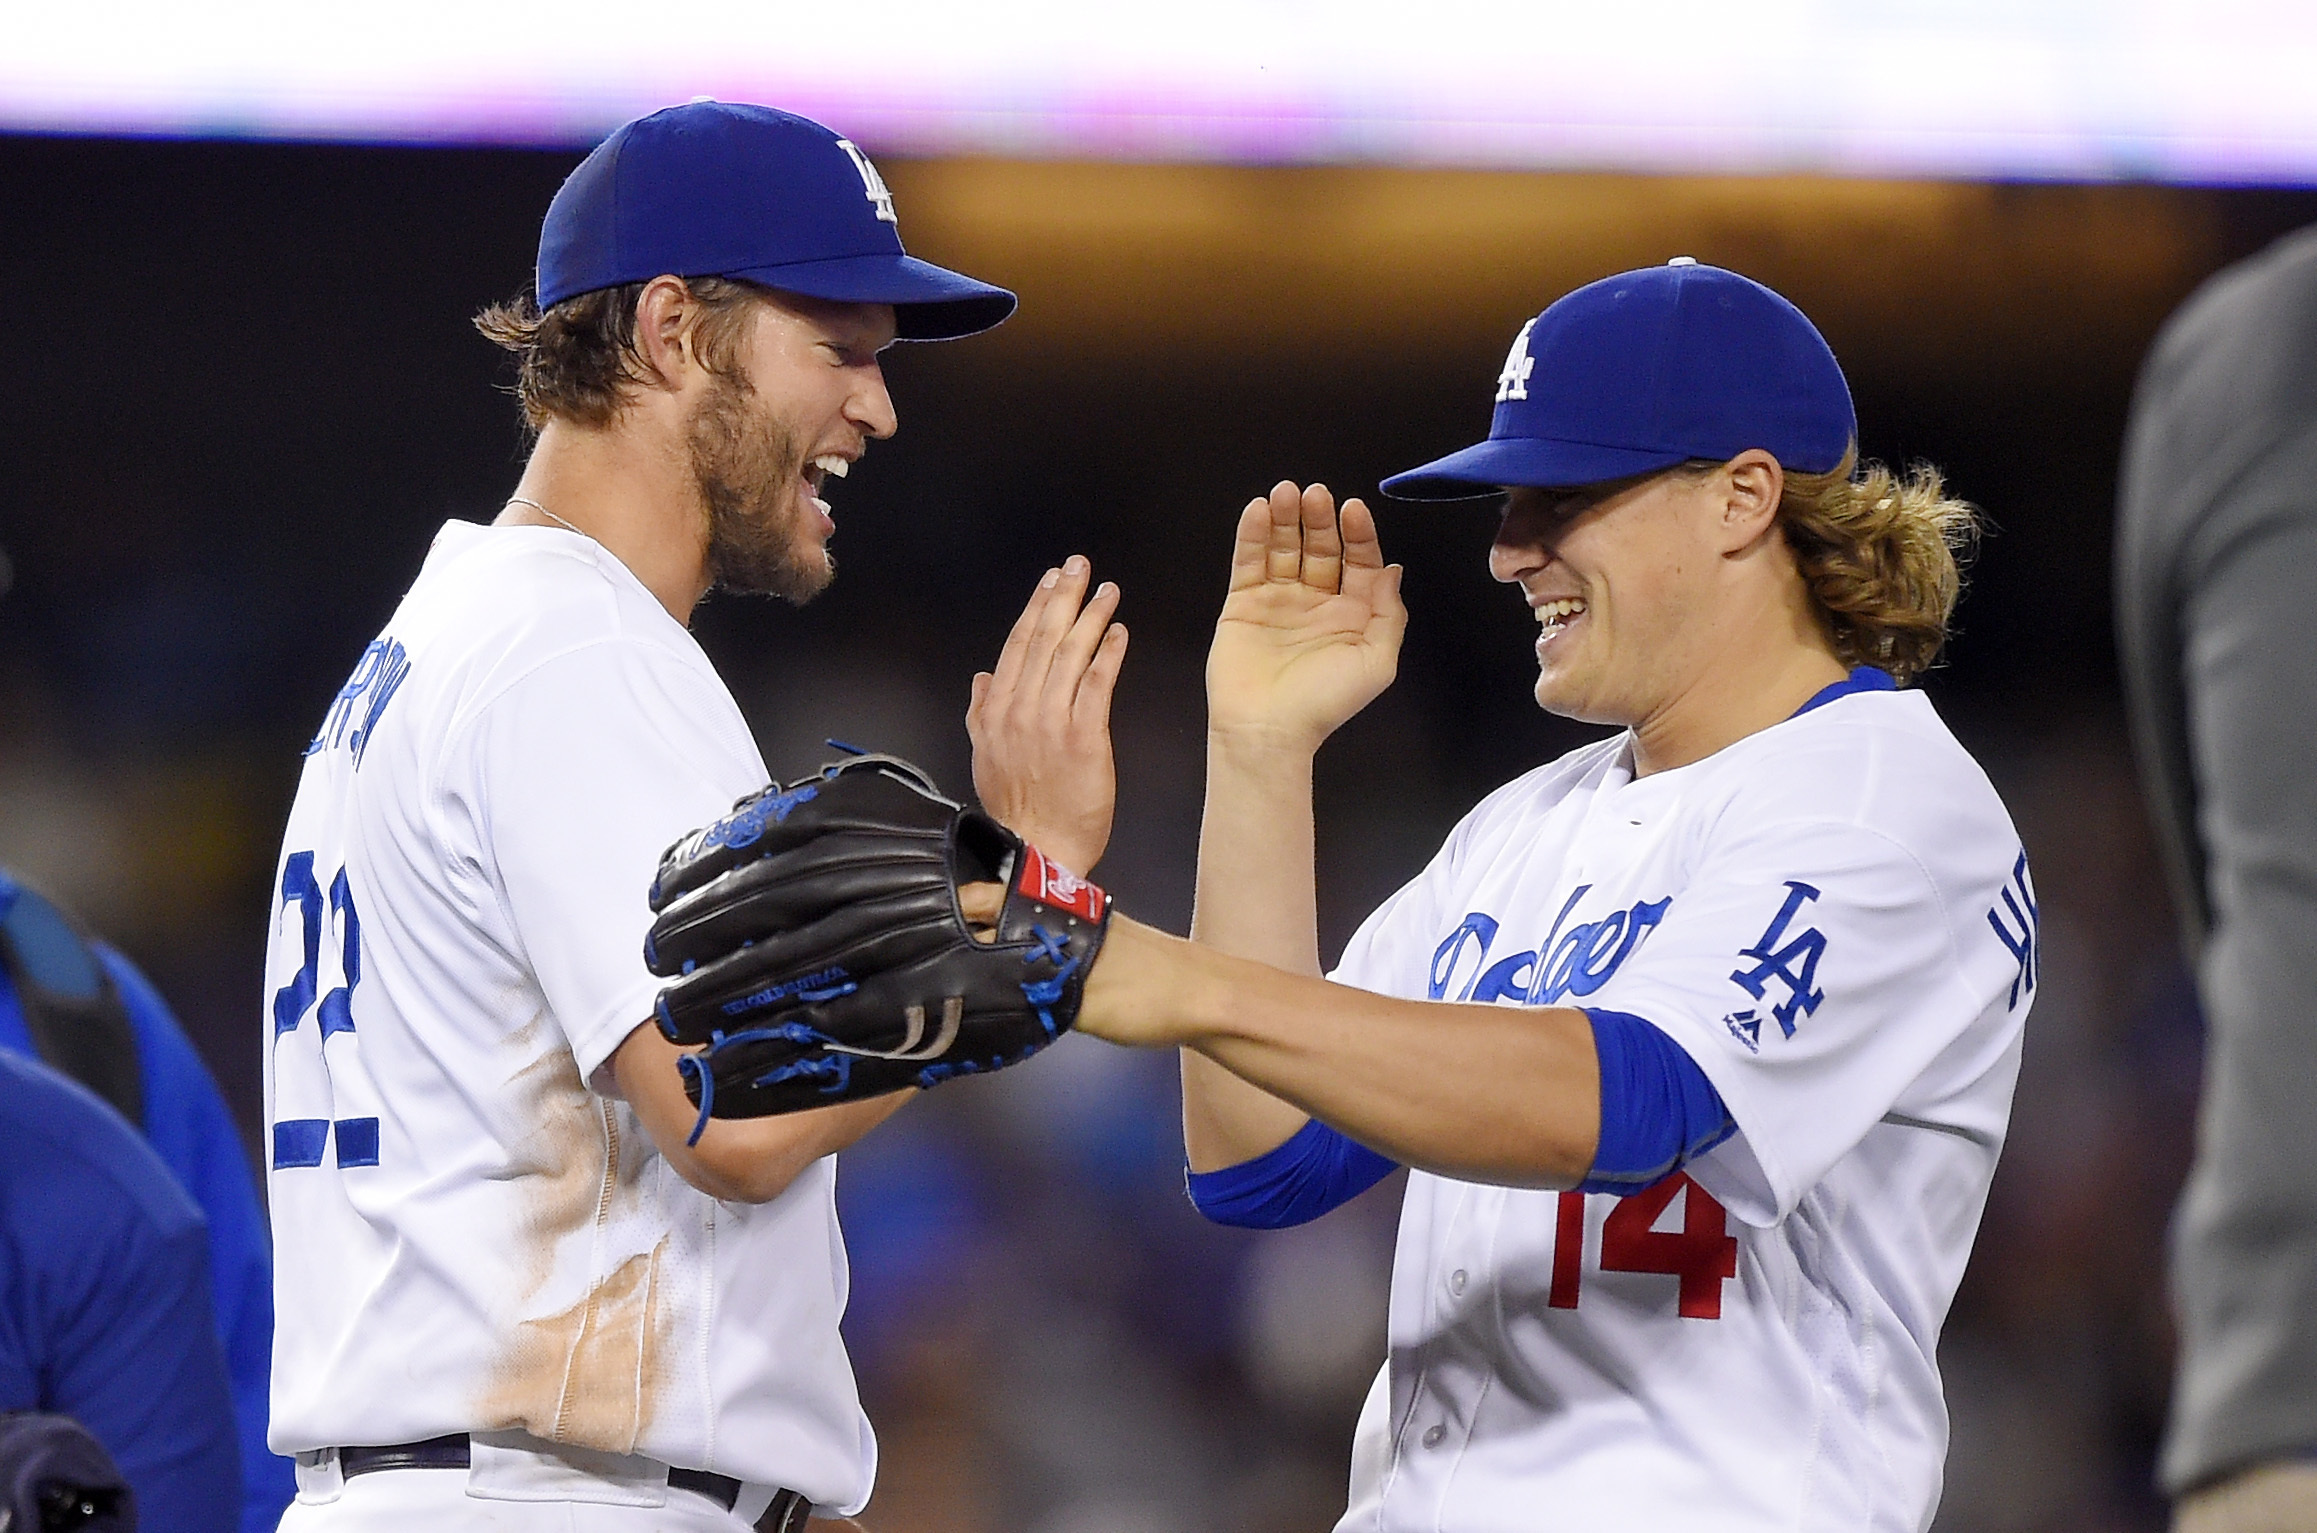 Los Angeles Dodgers starting pitcher Clayton Kershaw, left, and Enrique Hernandez congratulate each other after the Dodgers defeated the Cincinnati Reds 1-0 in a baseball game Monday, May 23, 2016, in Los Angeles. (AP Photo/Mark J. Terrill)